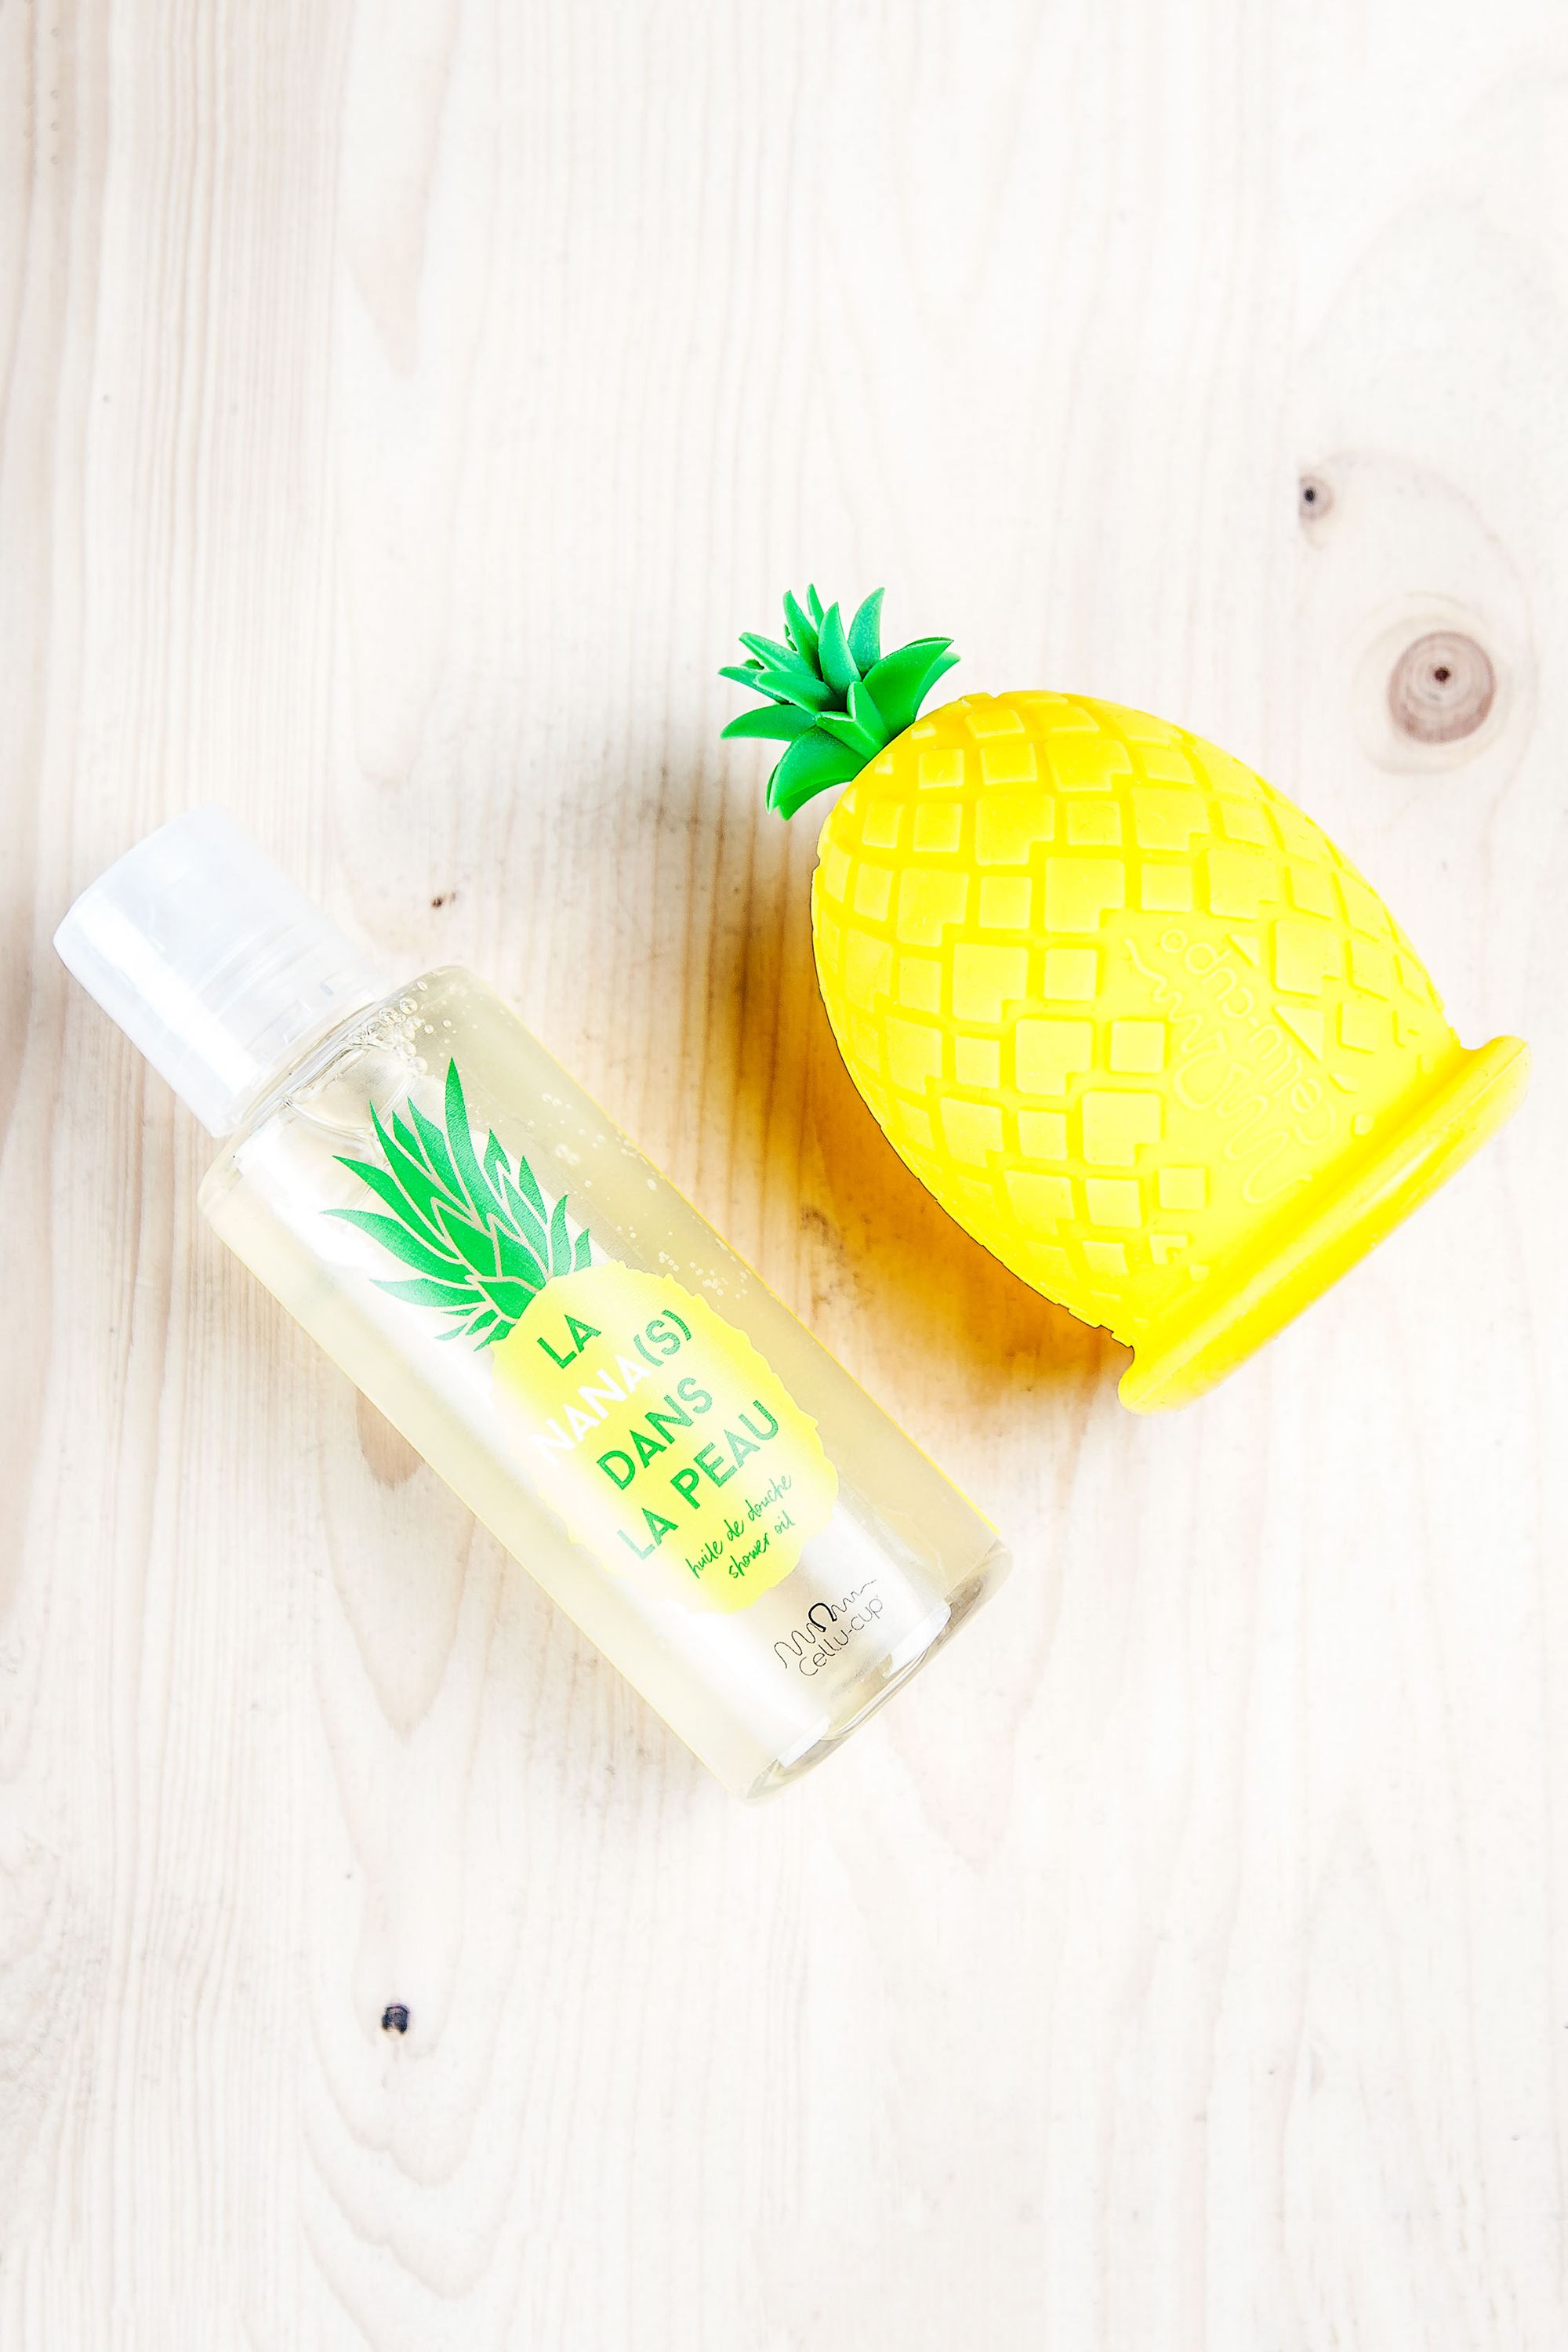 Blissim : Cellu-Cup - Duo cellu-cup ananas + huile de douche - Duo cellu-cup ananas + huile de douche